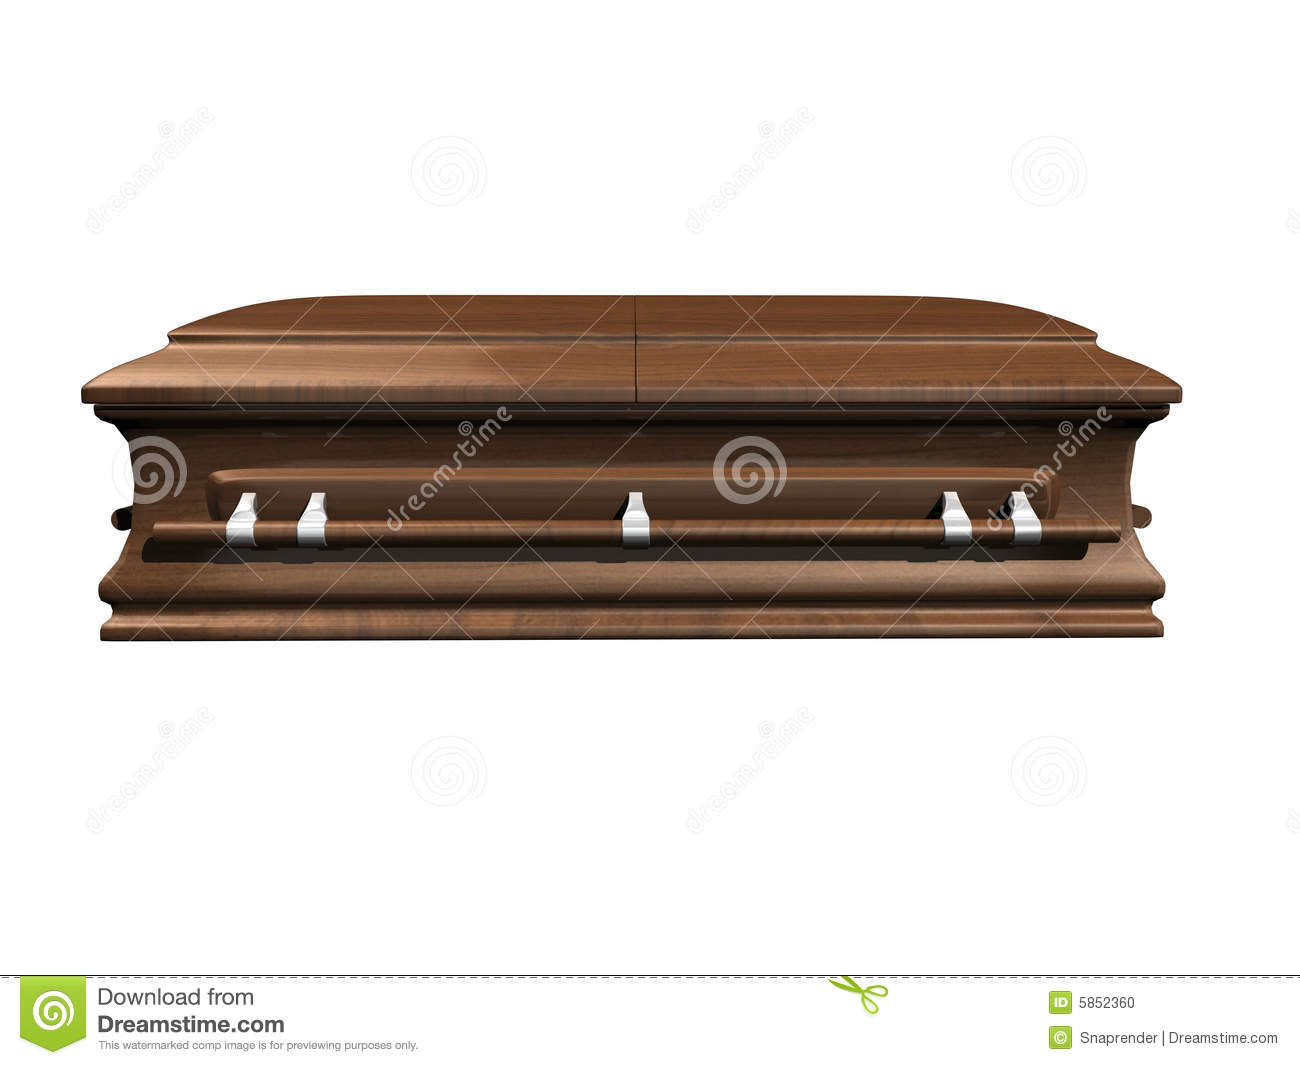 how to draw a coffin side view